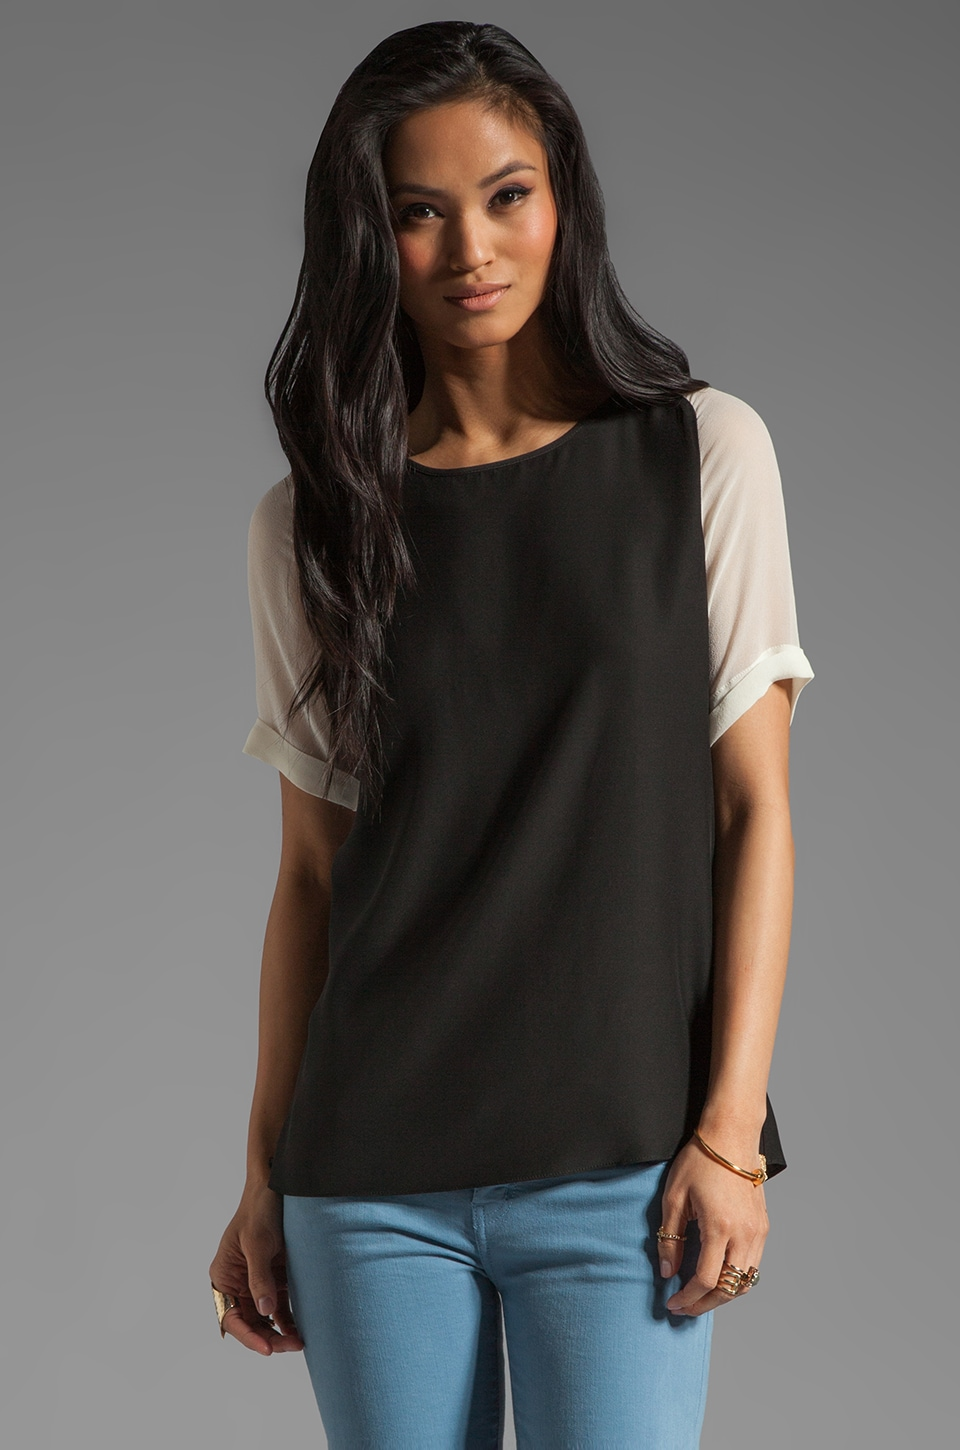 Parker Short Sleeve Chiffon Combo Top in Black